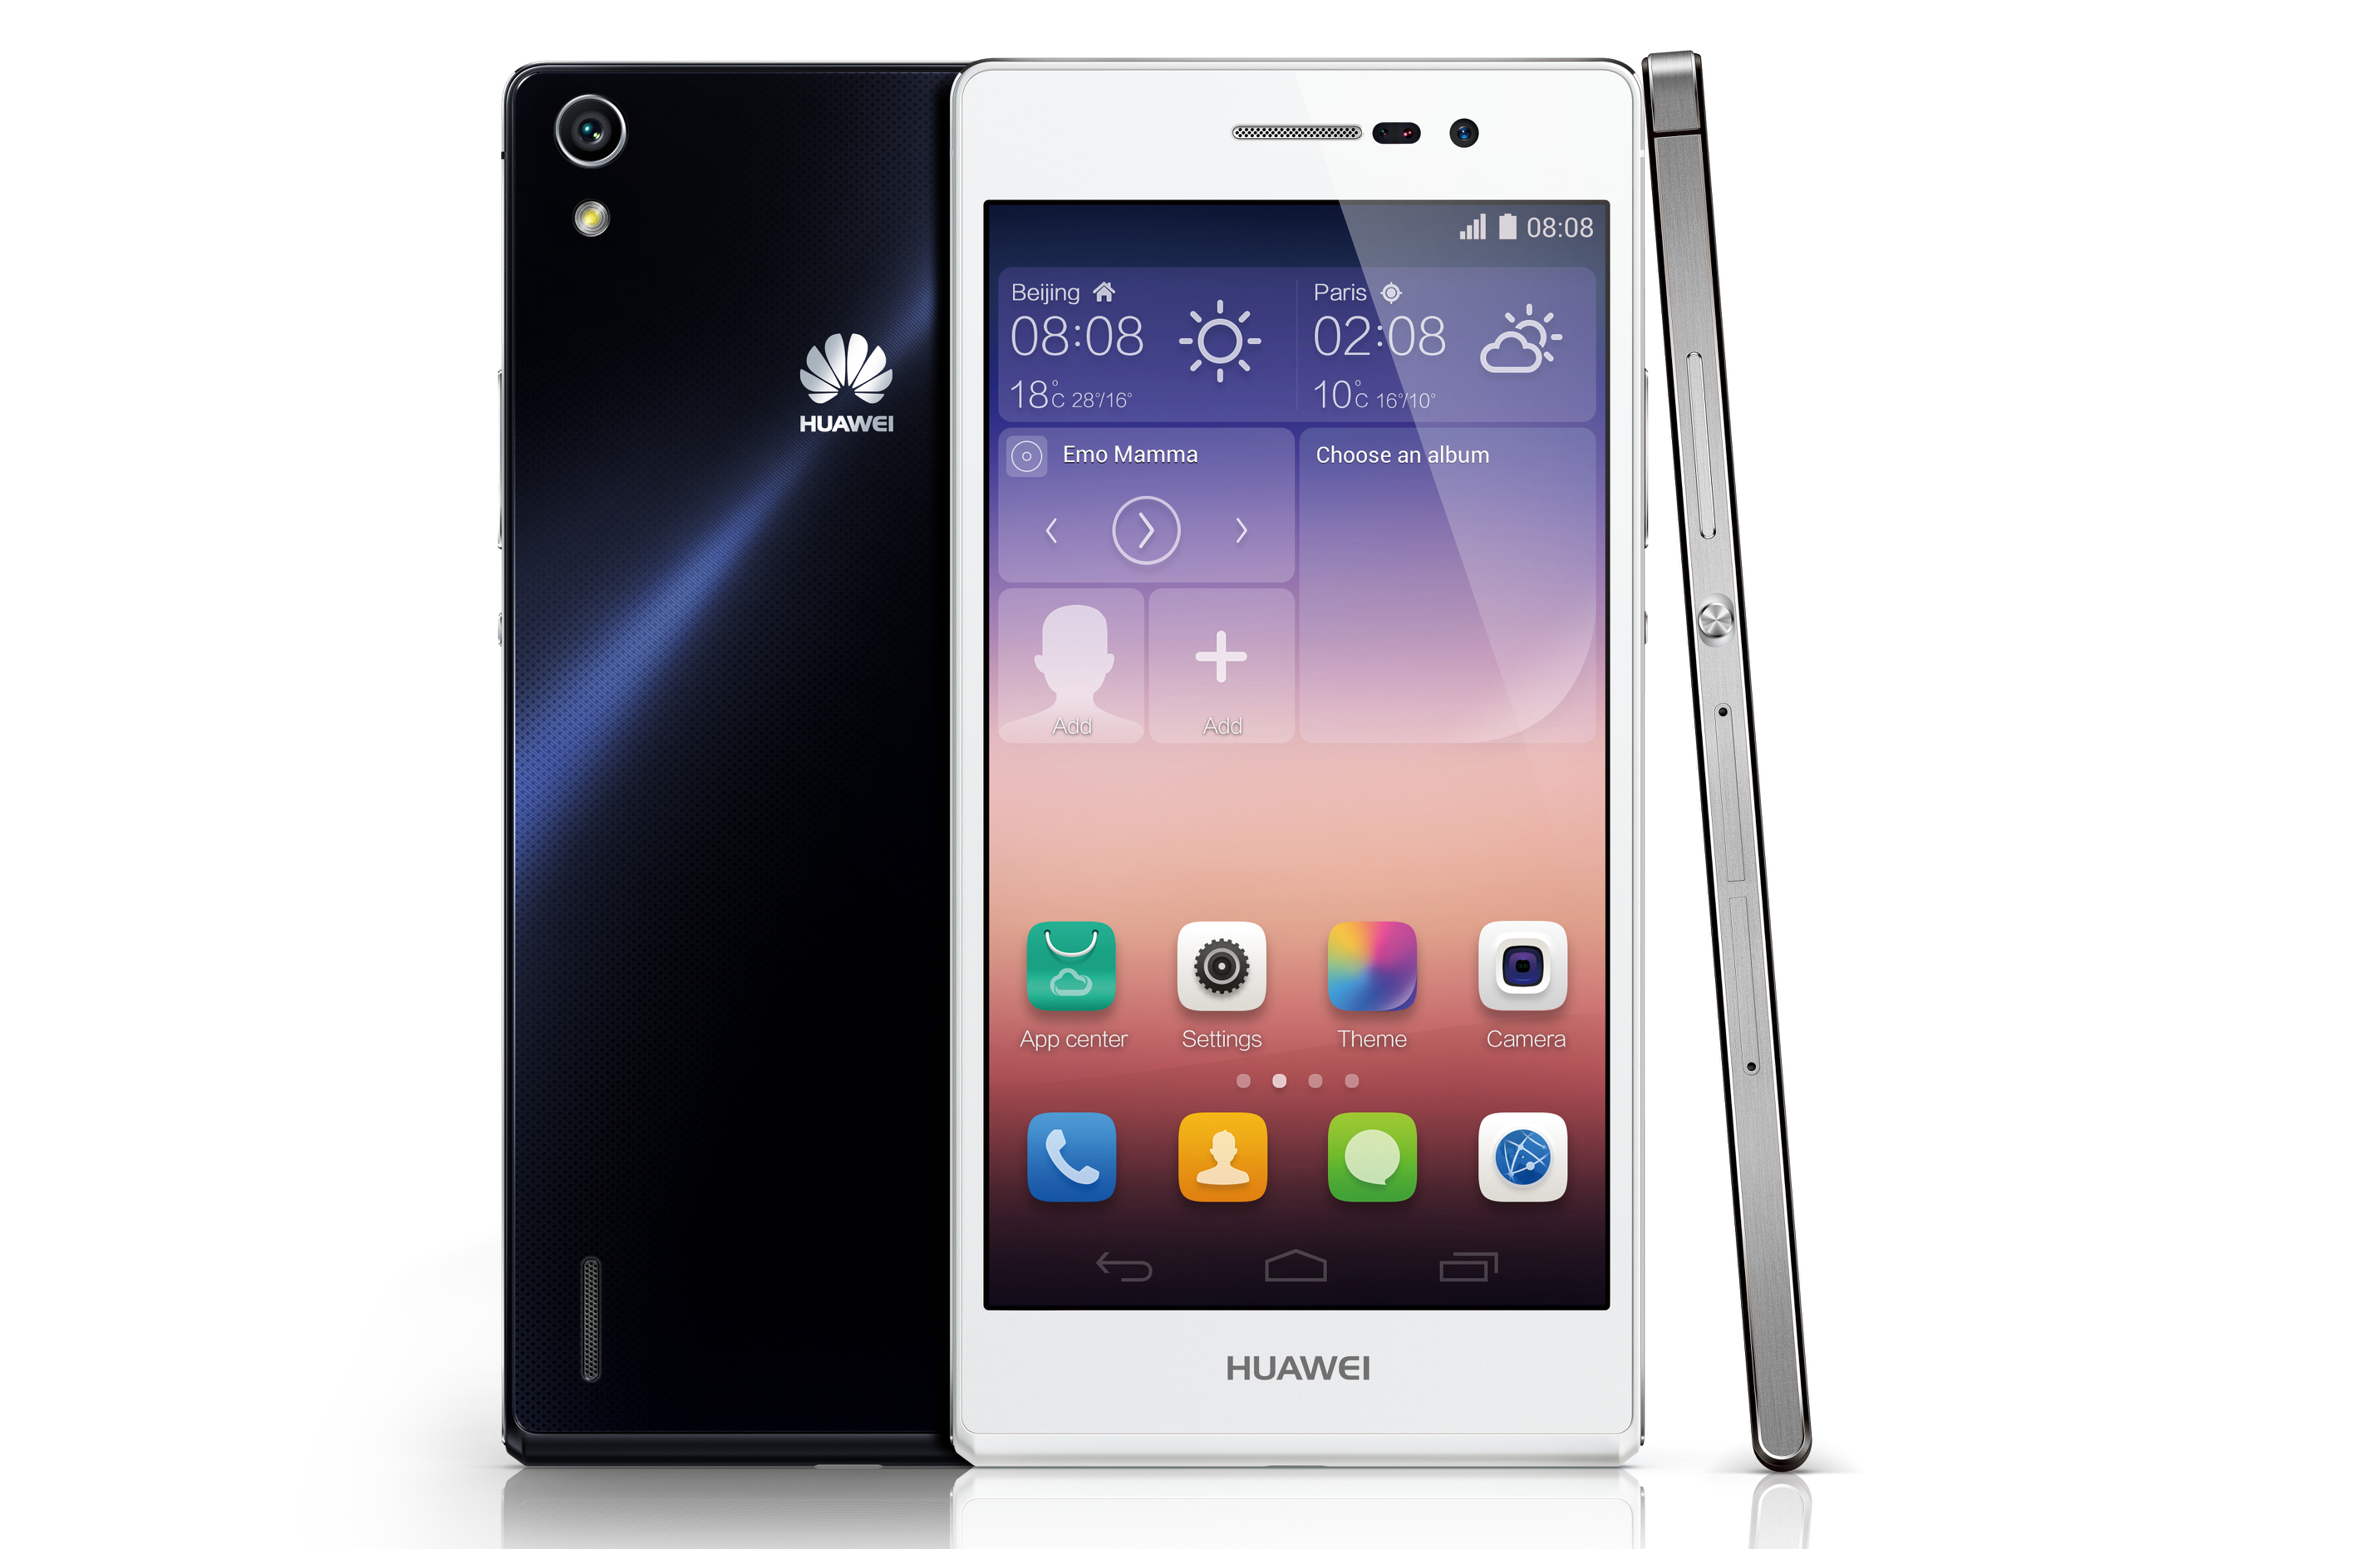 Huawei Ascend P7 unveiled 5inch 1080p display 6 5mm chassis and 8MP